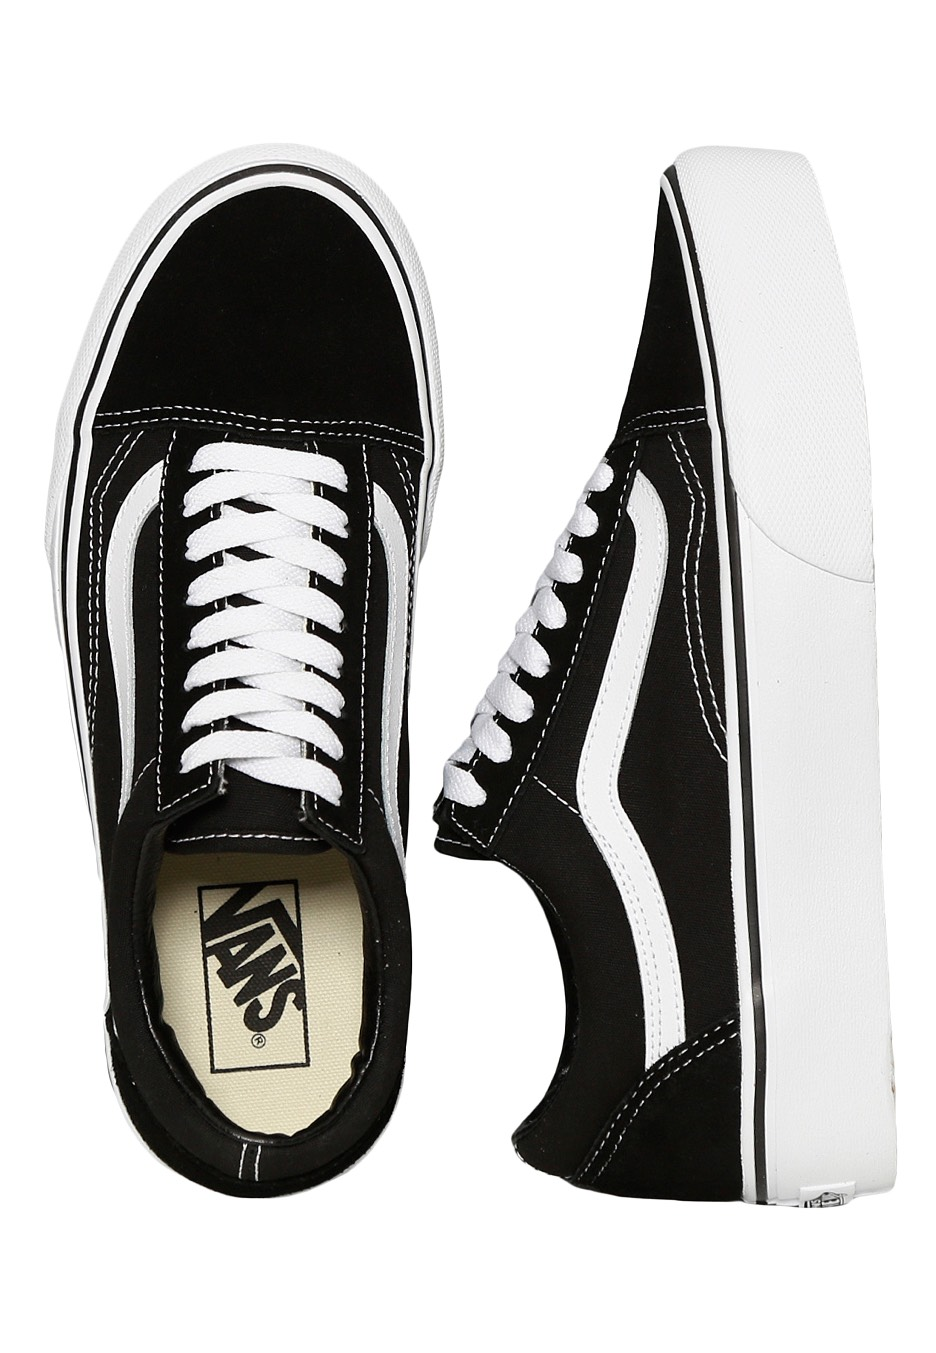 dc4c42e14fef Vans - Old Skool Platform Black White - Girl Shoes - Impericon.com UK